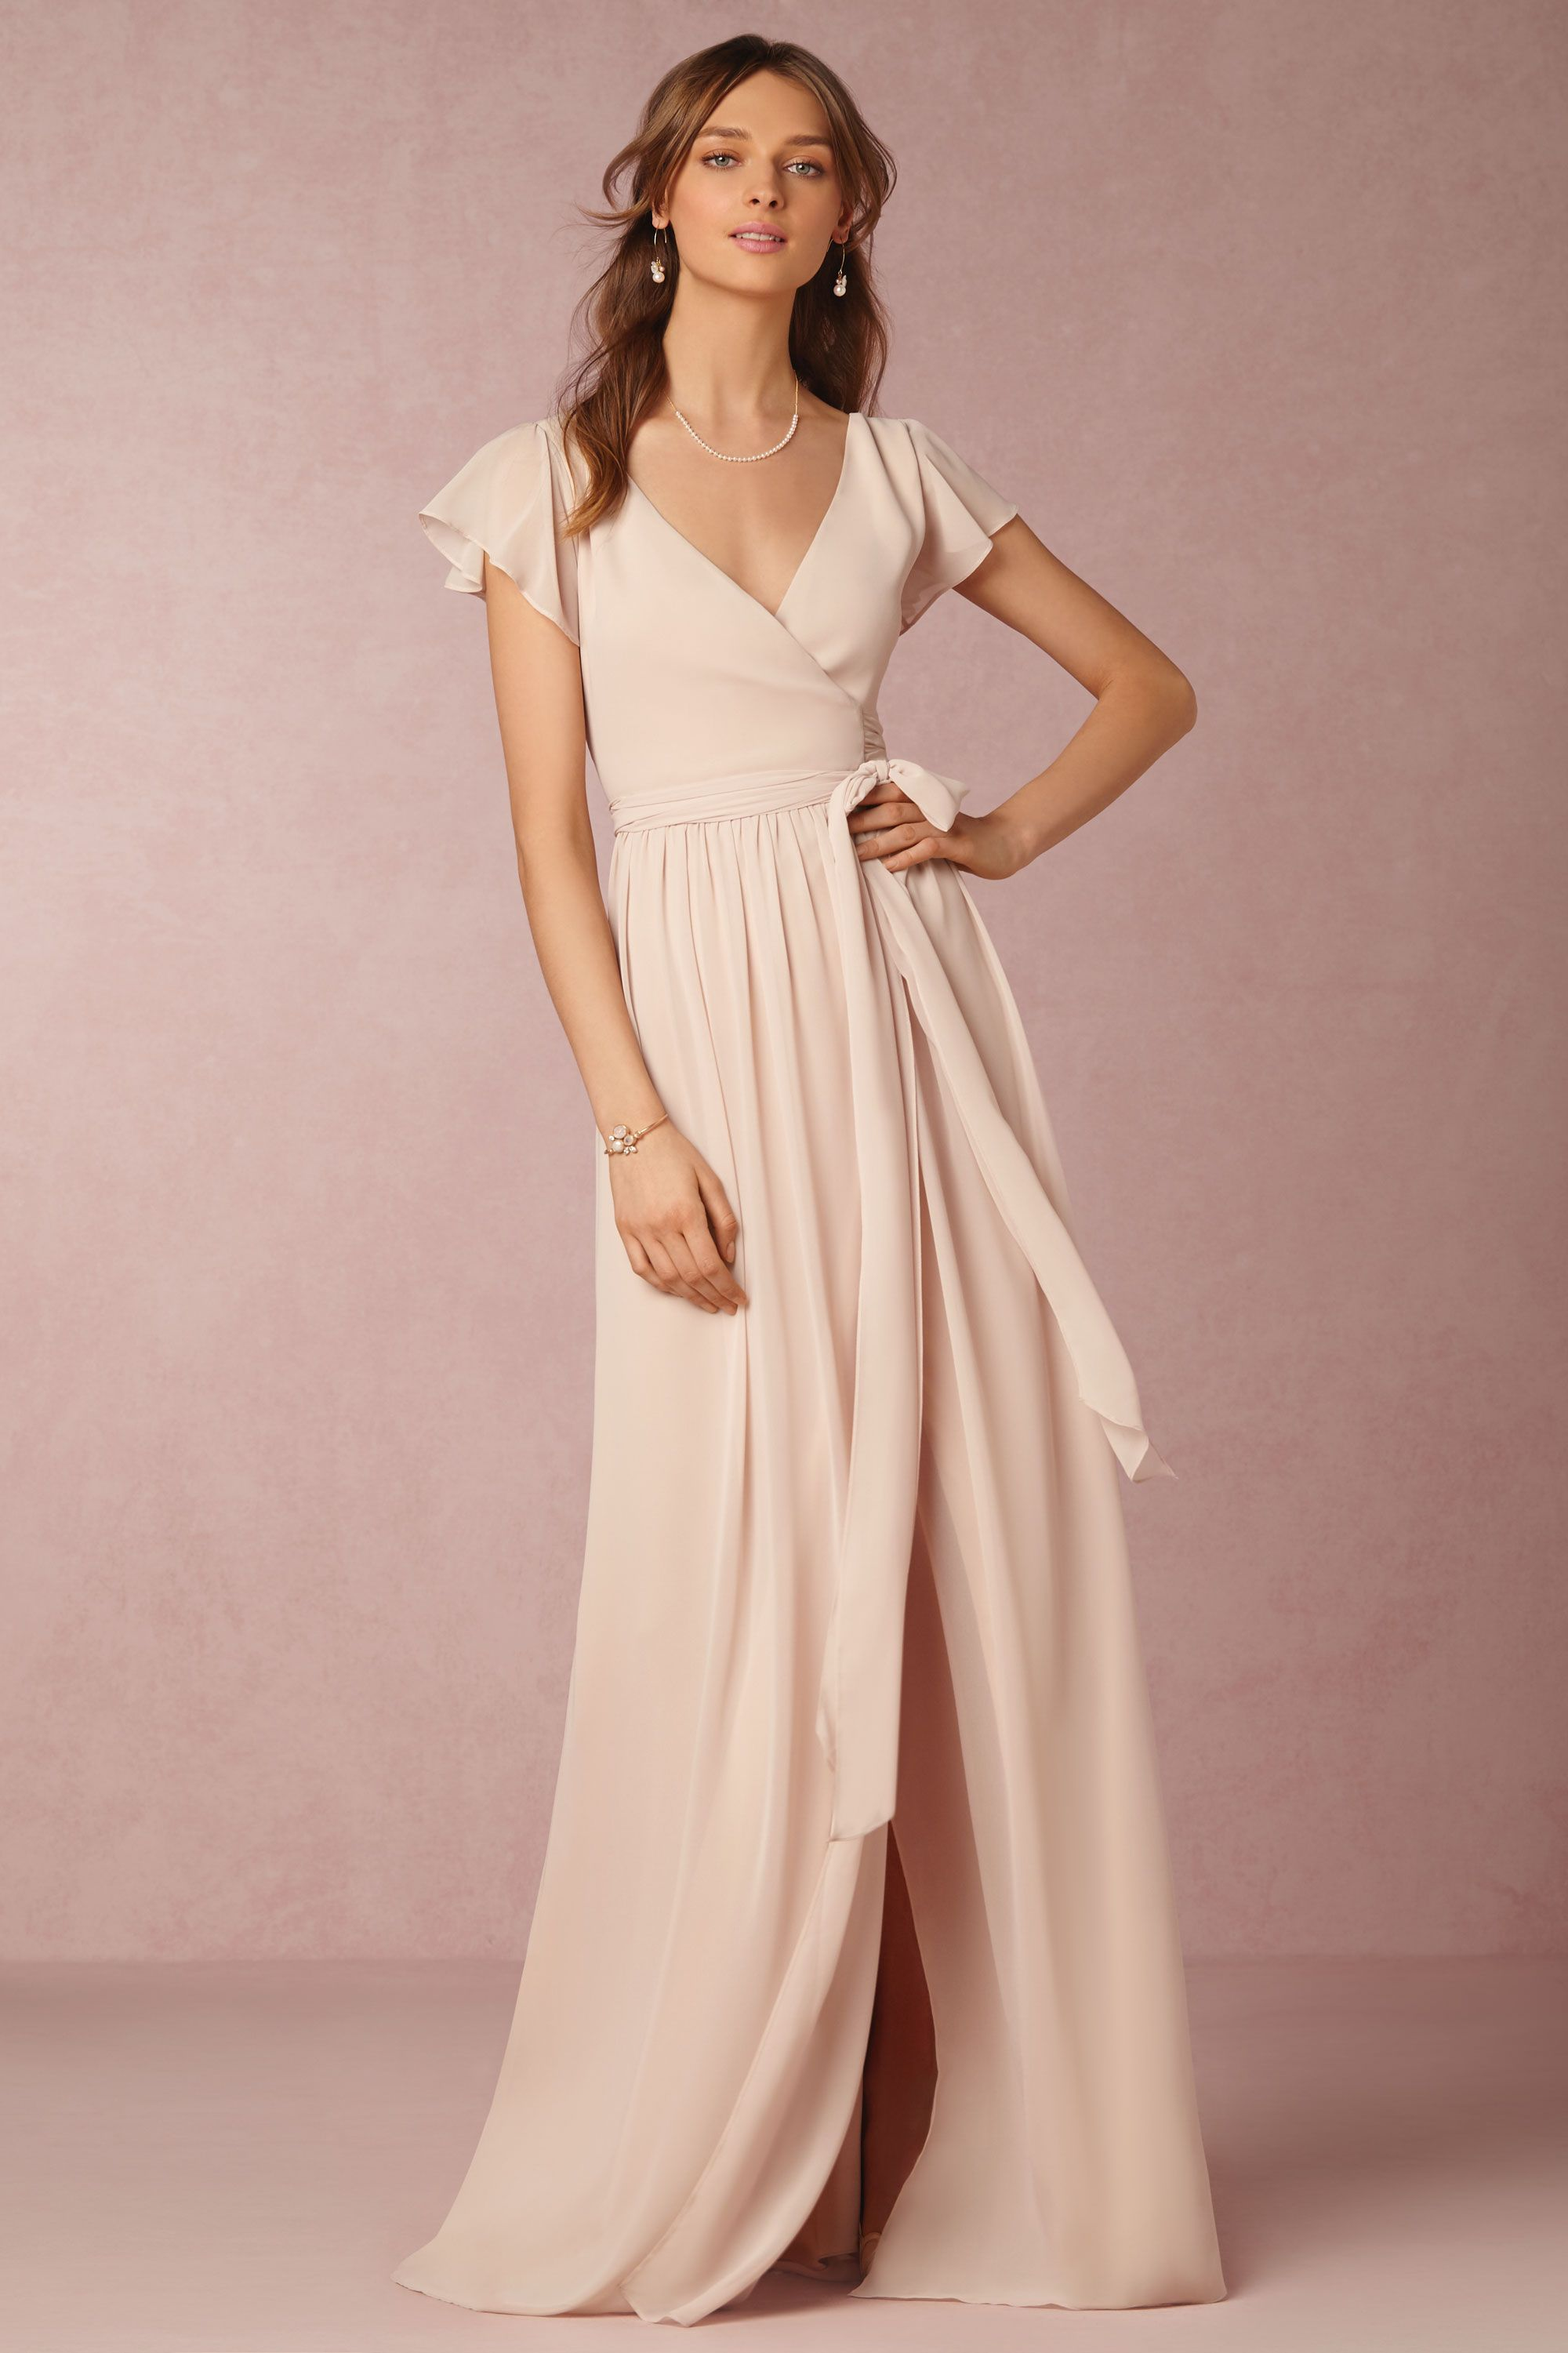 Zola Dress from @BHLDN | Labor Day Bridesmaid Dress | Pinterest ...